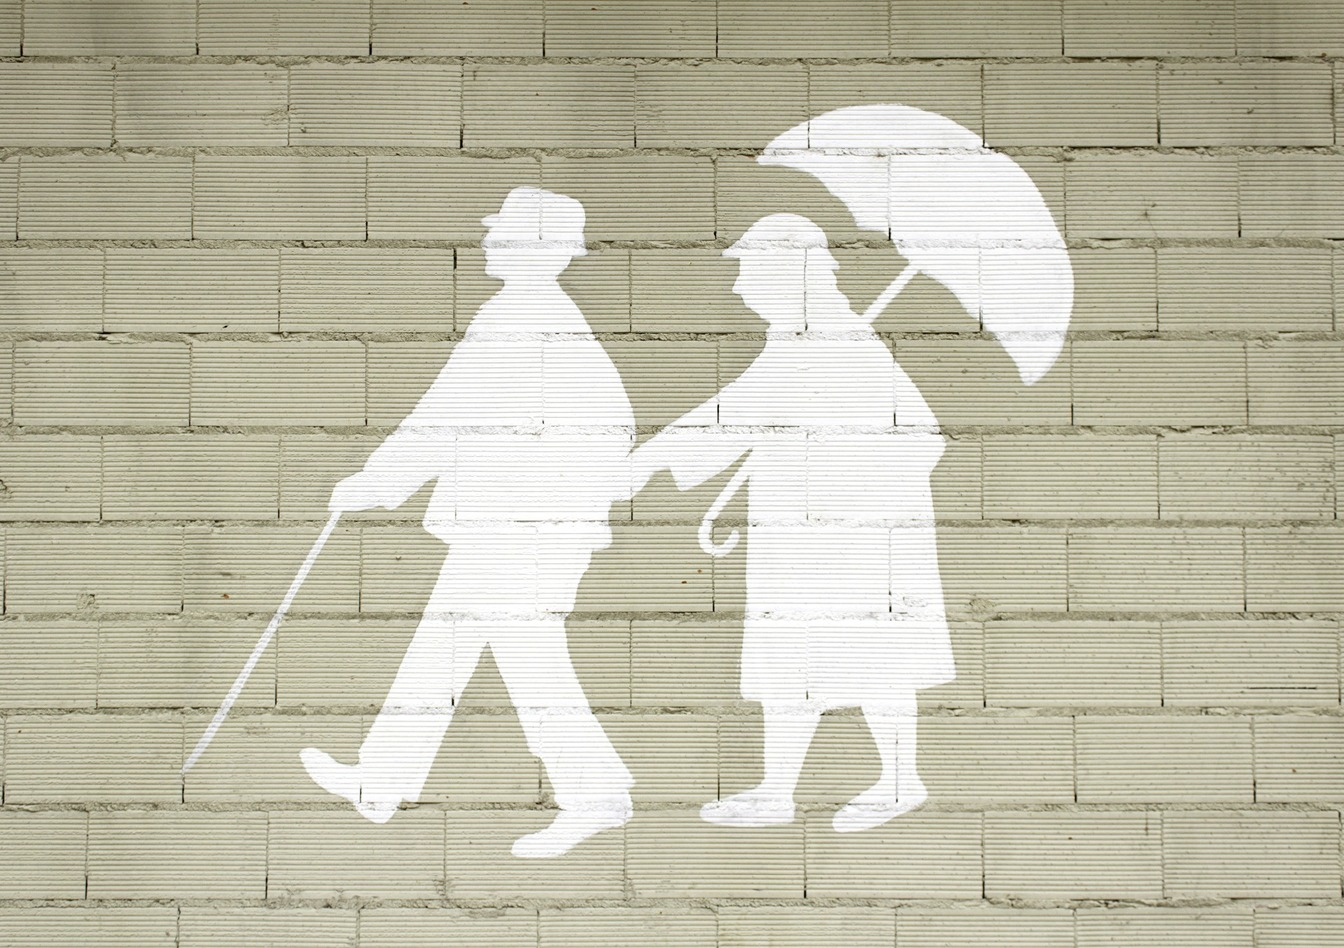 A white painted silhouette of an older man with a walking stick and an older woman with an umbrella holding hands